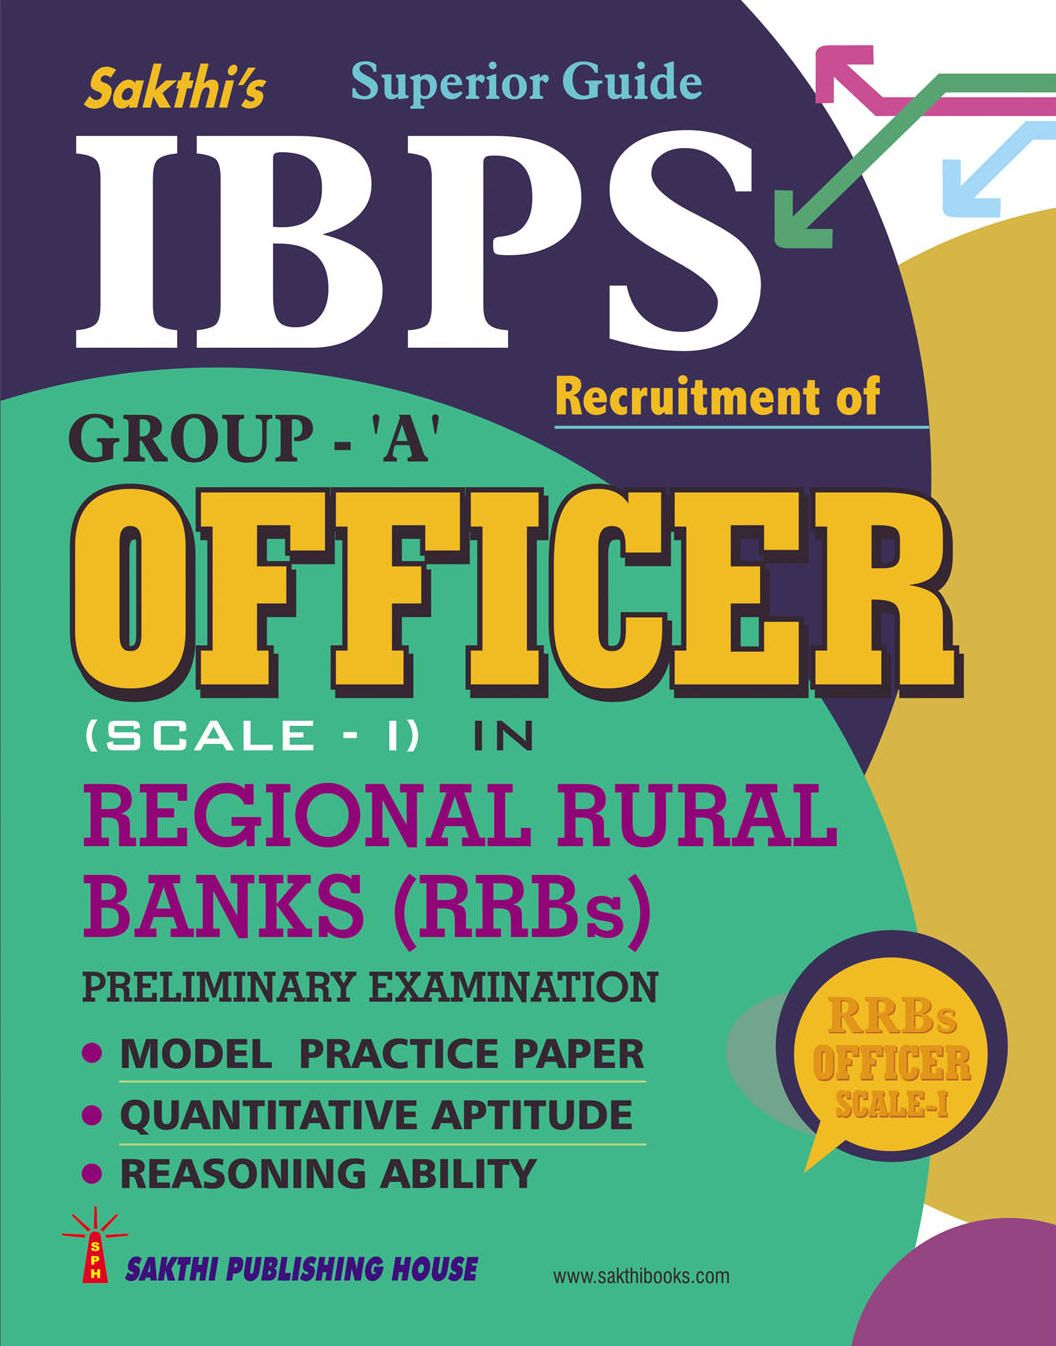 regional rural bank officer scale 1 result